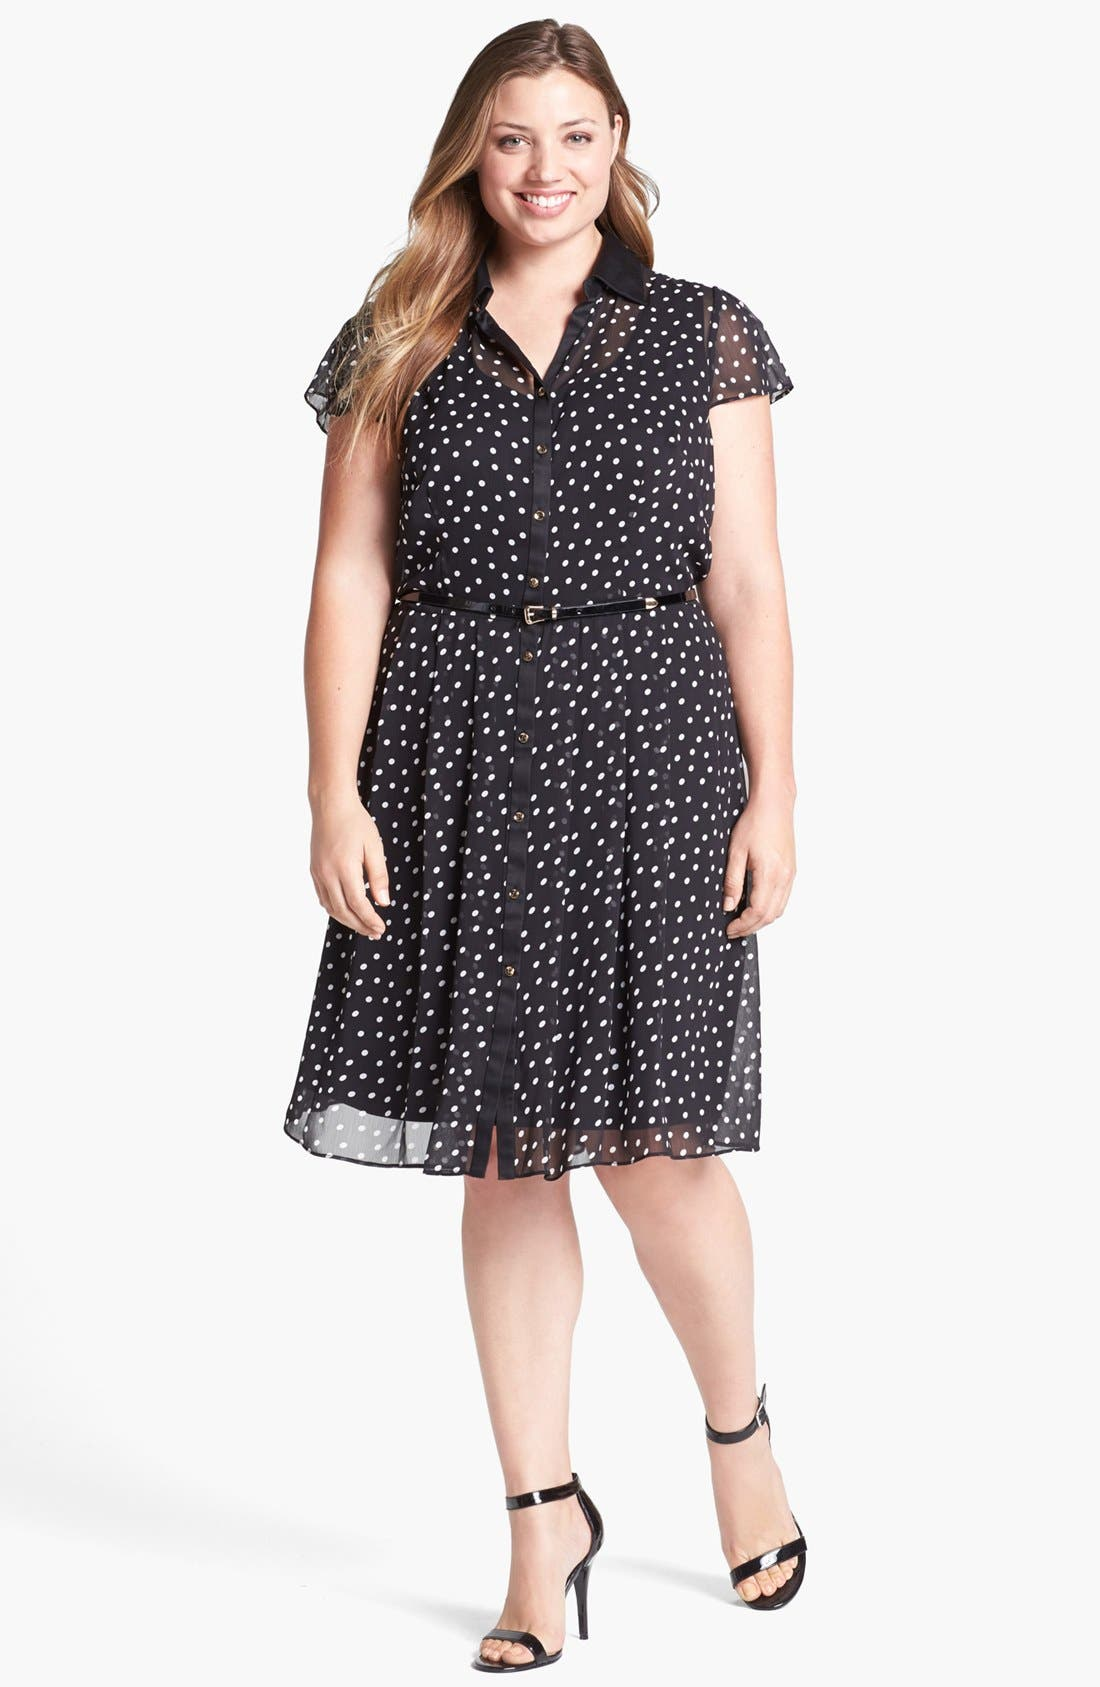 Main Image - Donna Ricco Polka Dot Chiffon Shirtdress (Plus Size)